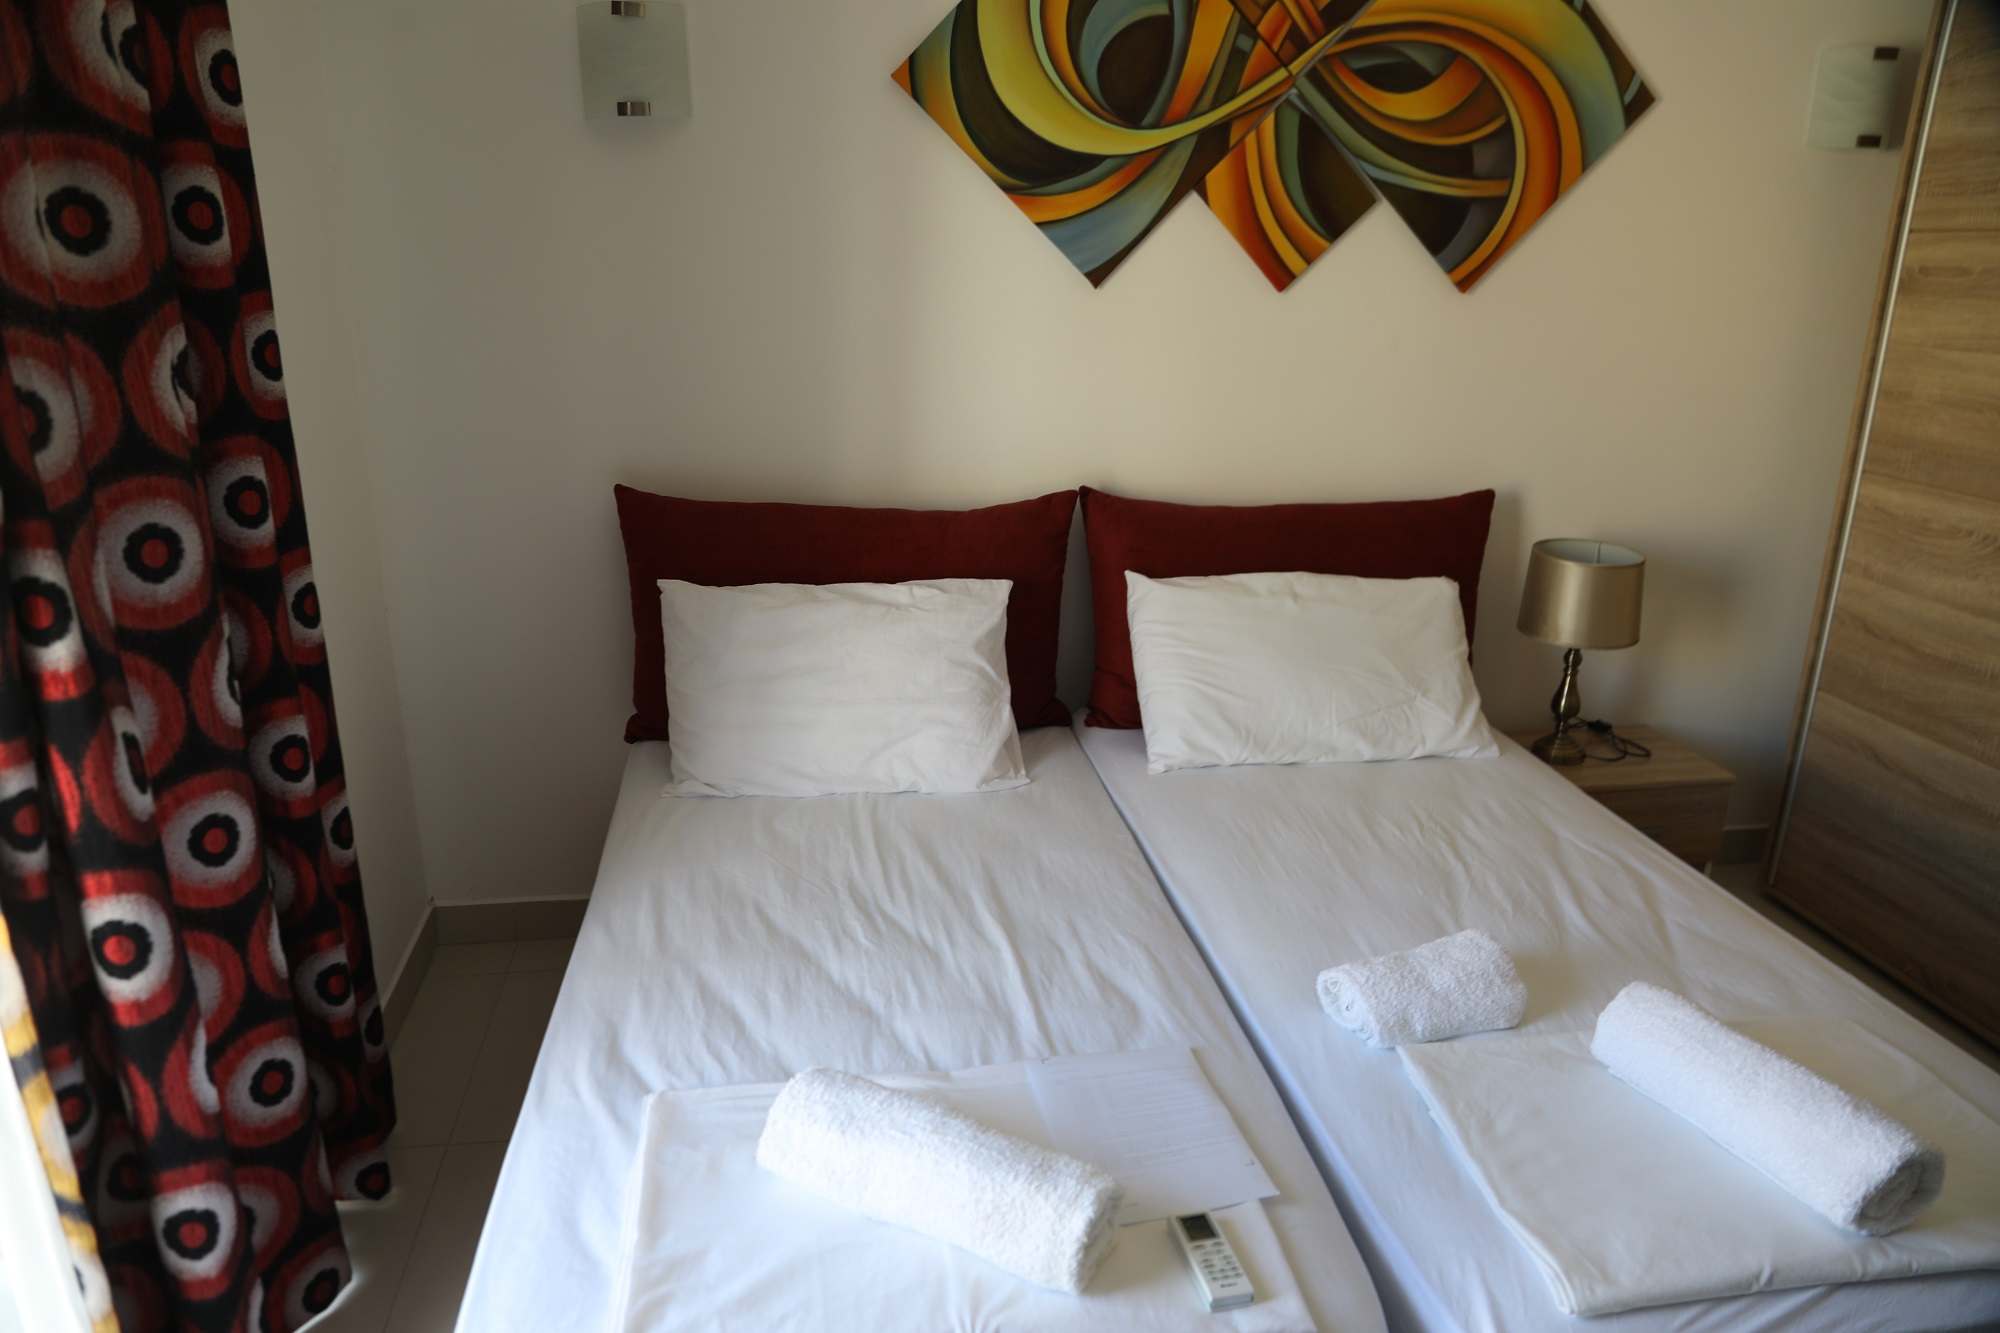 One of the bedrooms at our BELS Gozo student residence